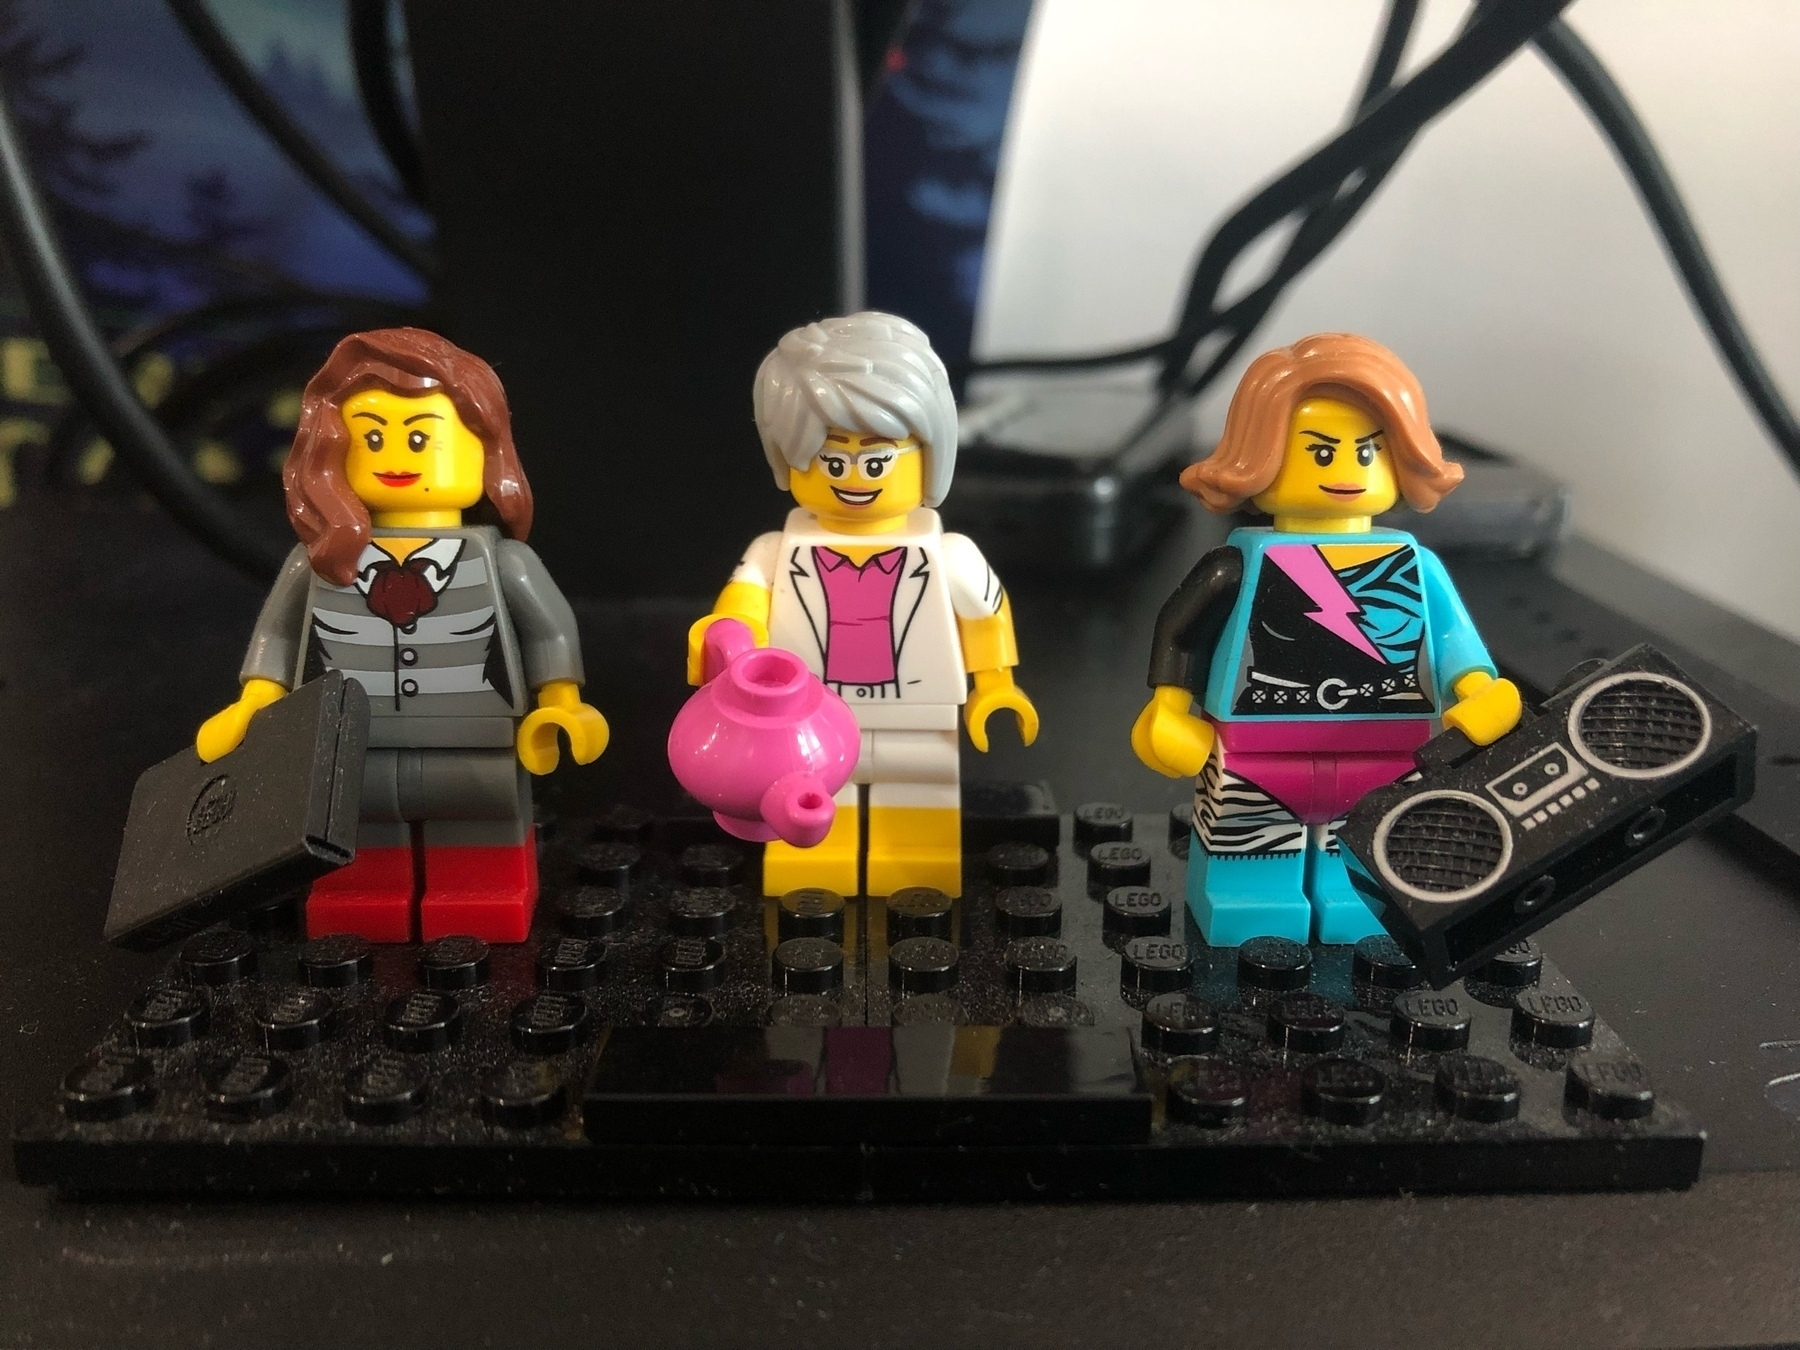 Three LEGO minifigs. A brunette in a suit, a gray haired woman holding a tea pot, A light haired brunette in colorful 80s workout gear.